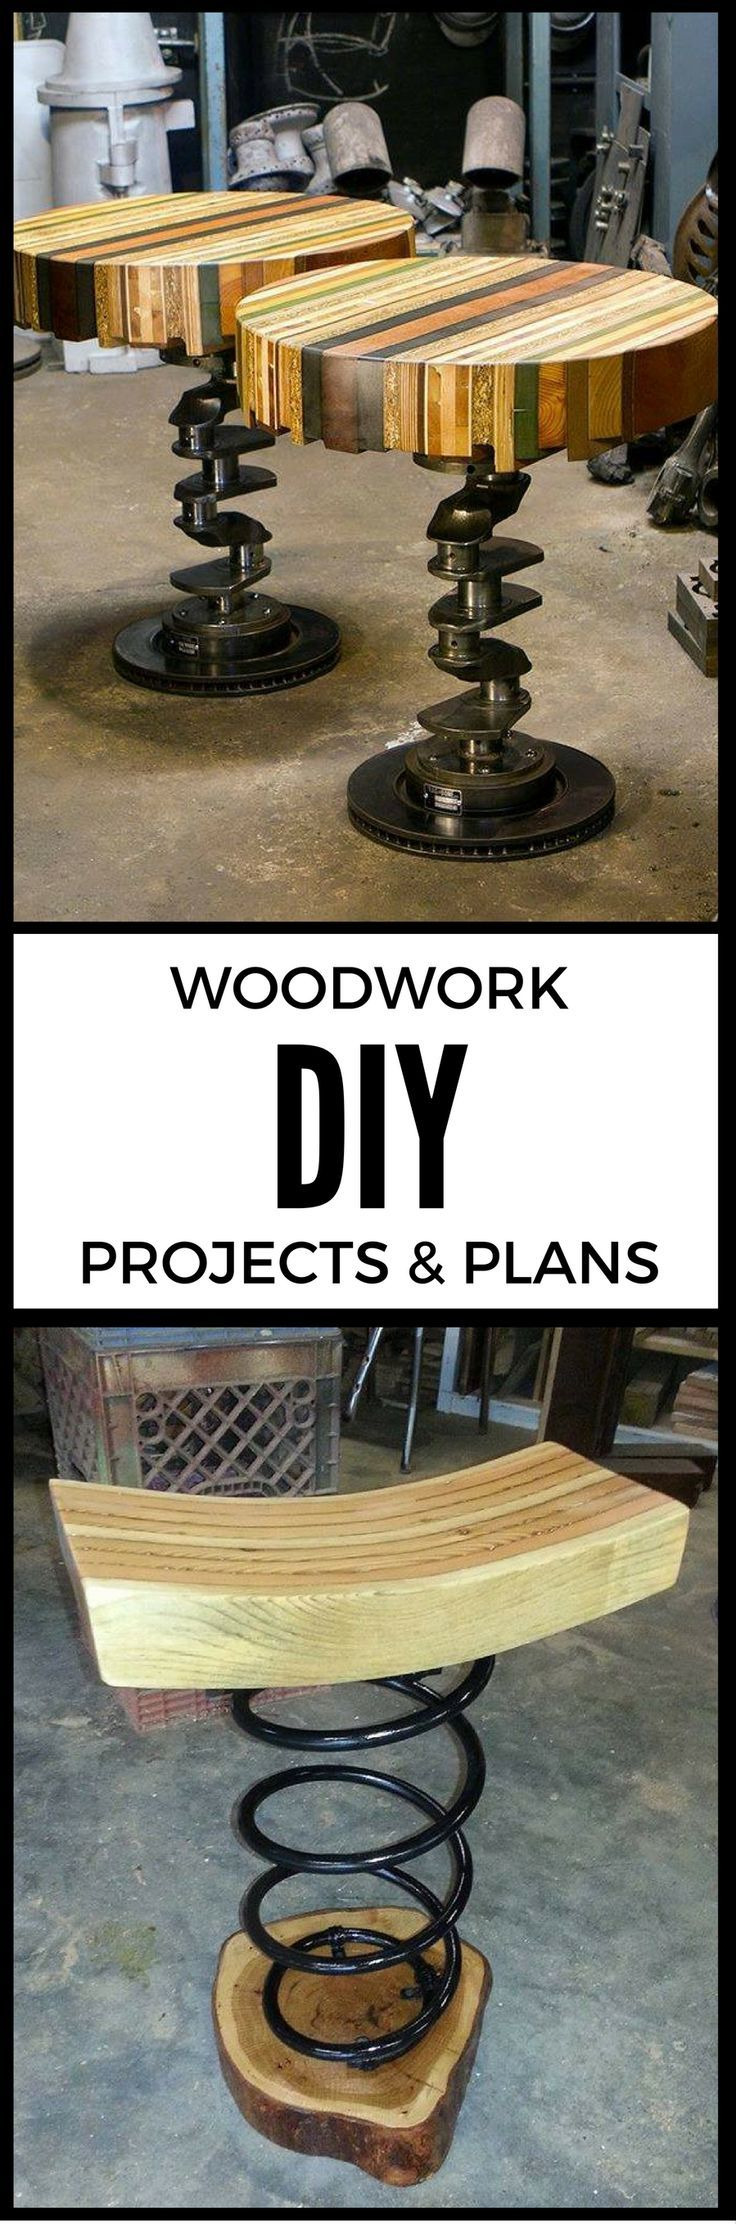 Woodworking plans projects and ideas httpvidagedcums diy woodworking projects do it yourself diy garage makeover ideas include storage organization shelves and project plans for cool new garage decor solutioingenieria Gallery